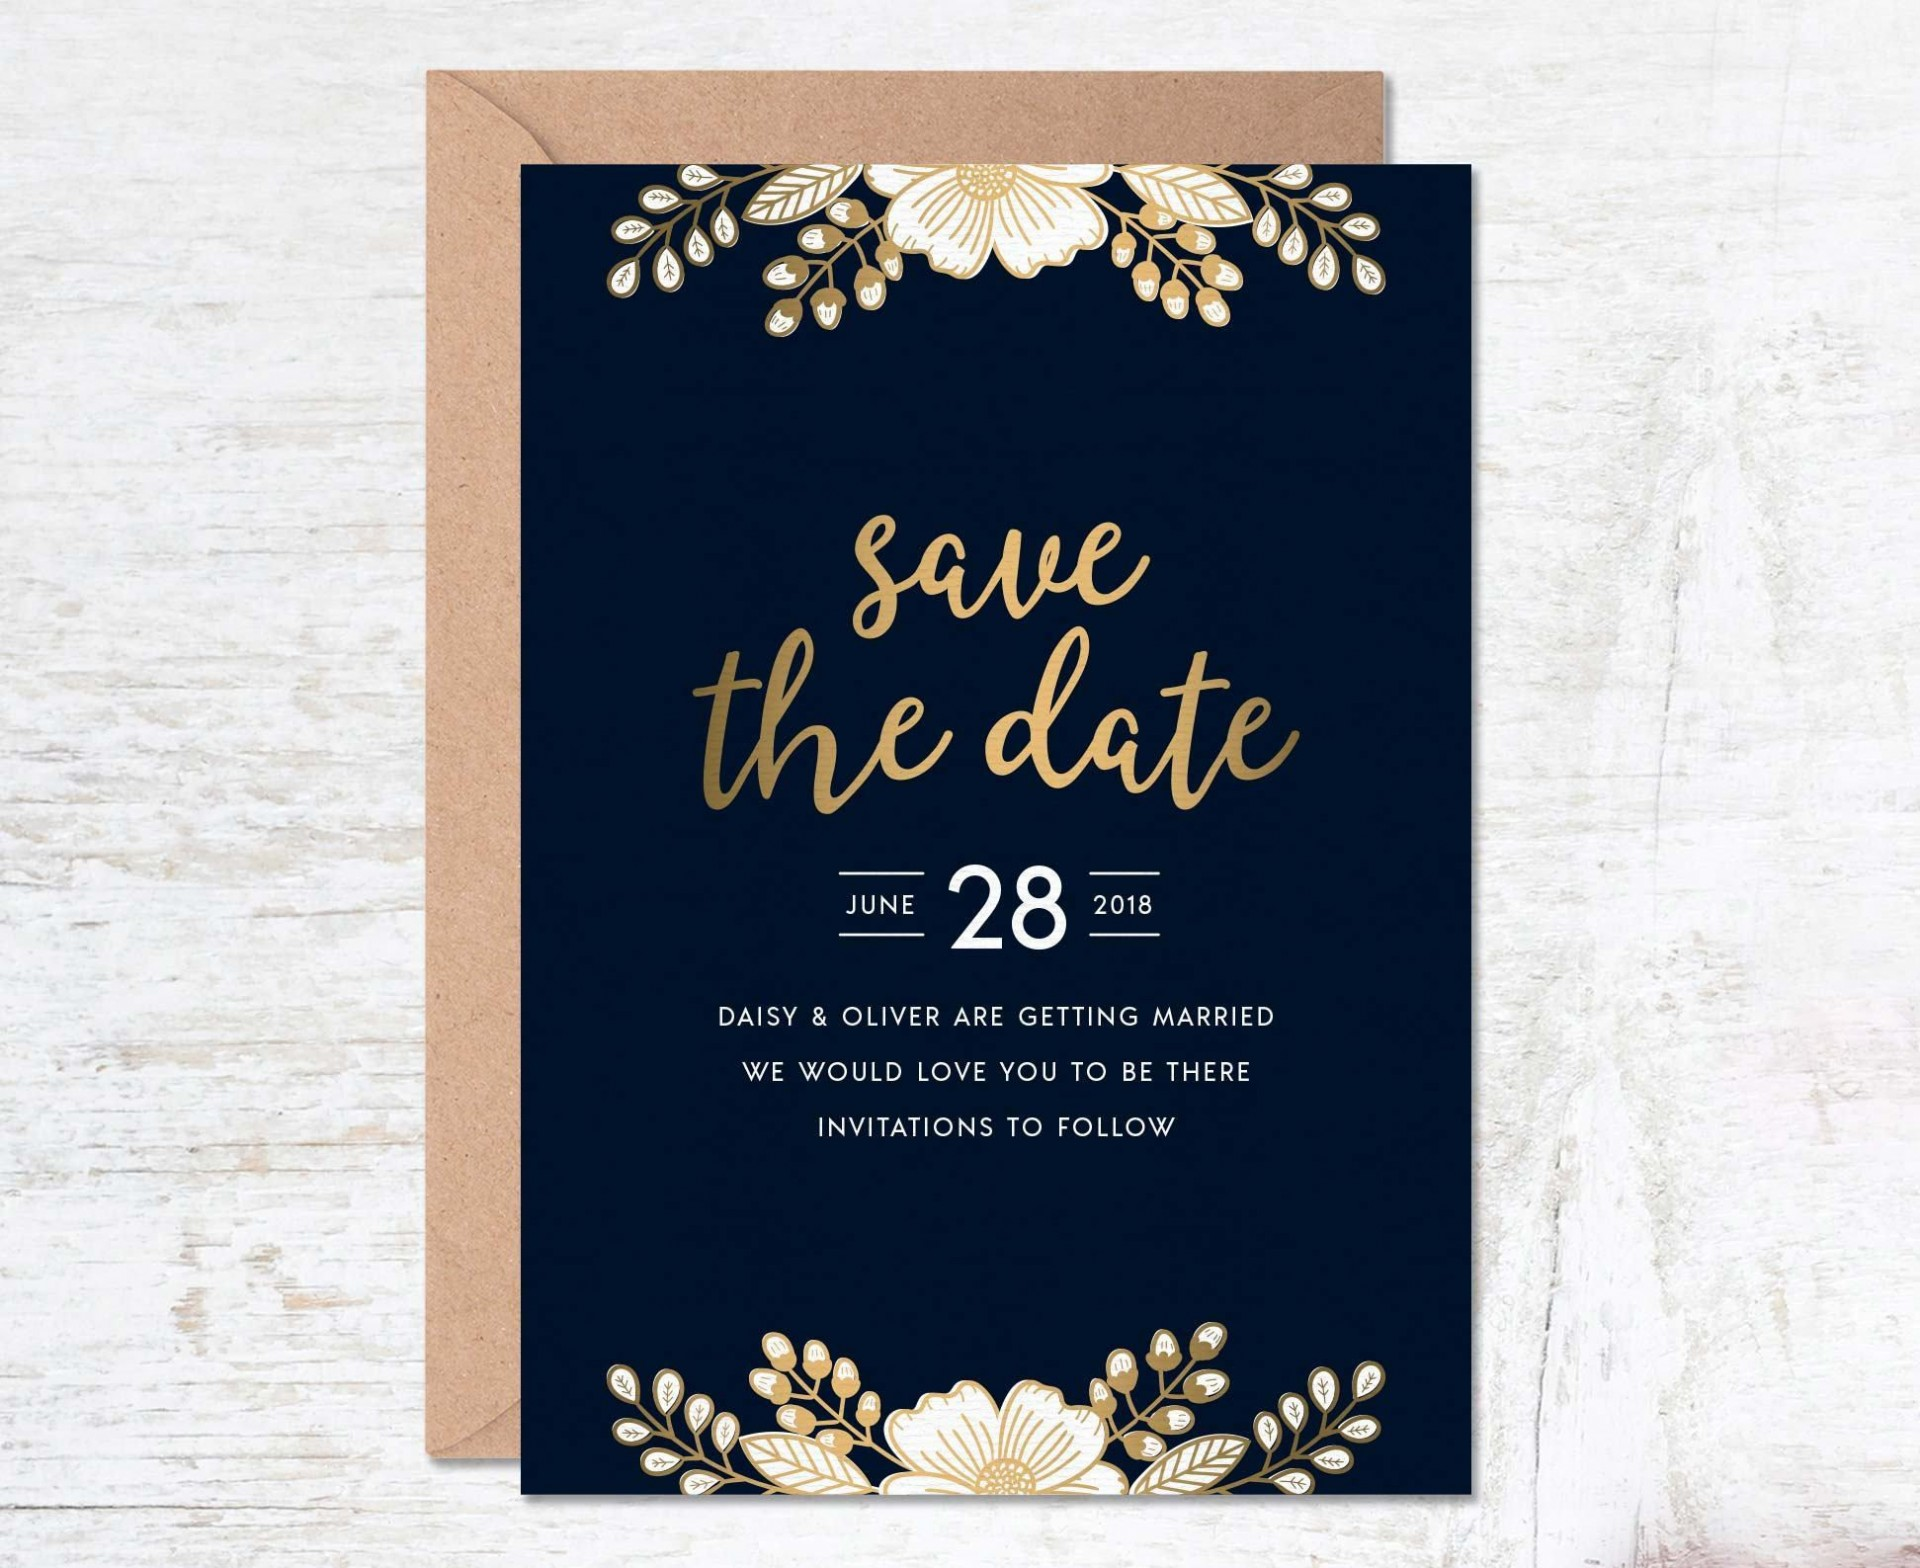 000 Unusual Free Save The Date Birthday Postcard Template Photo 1920